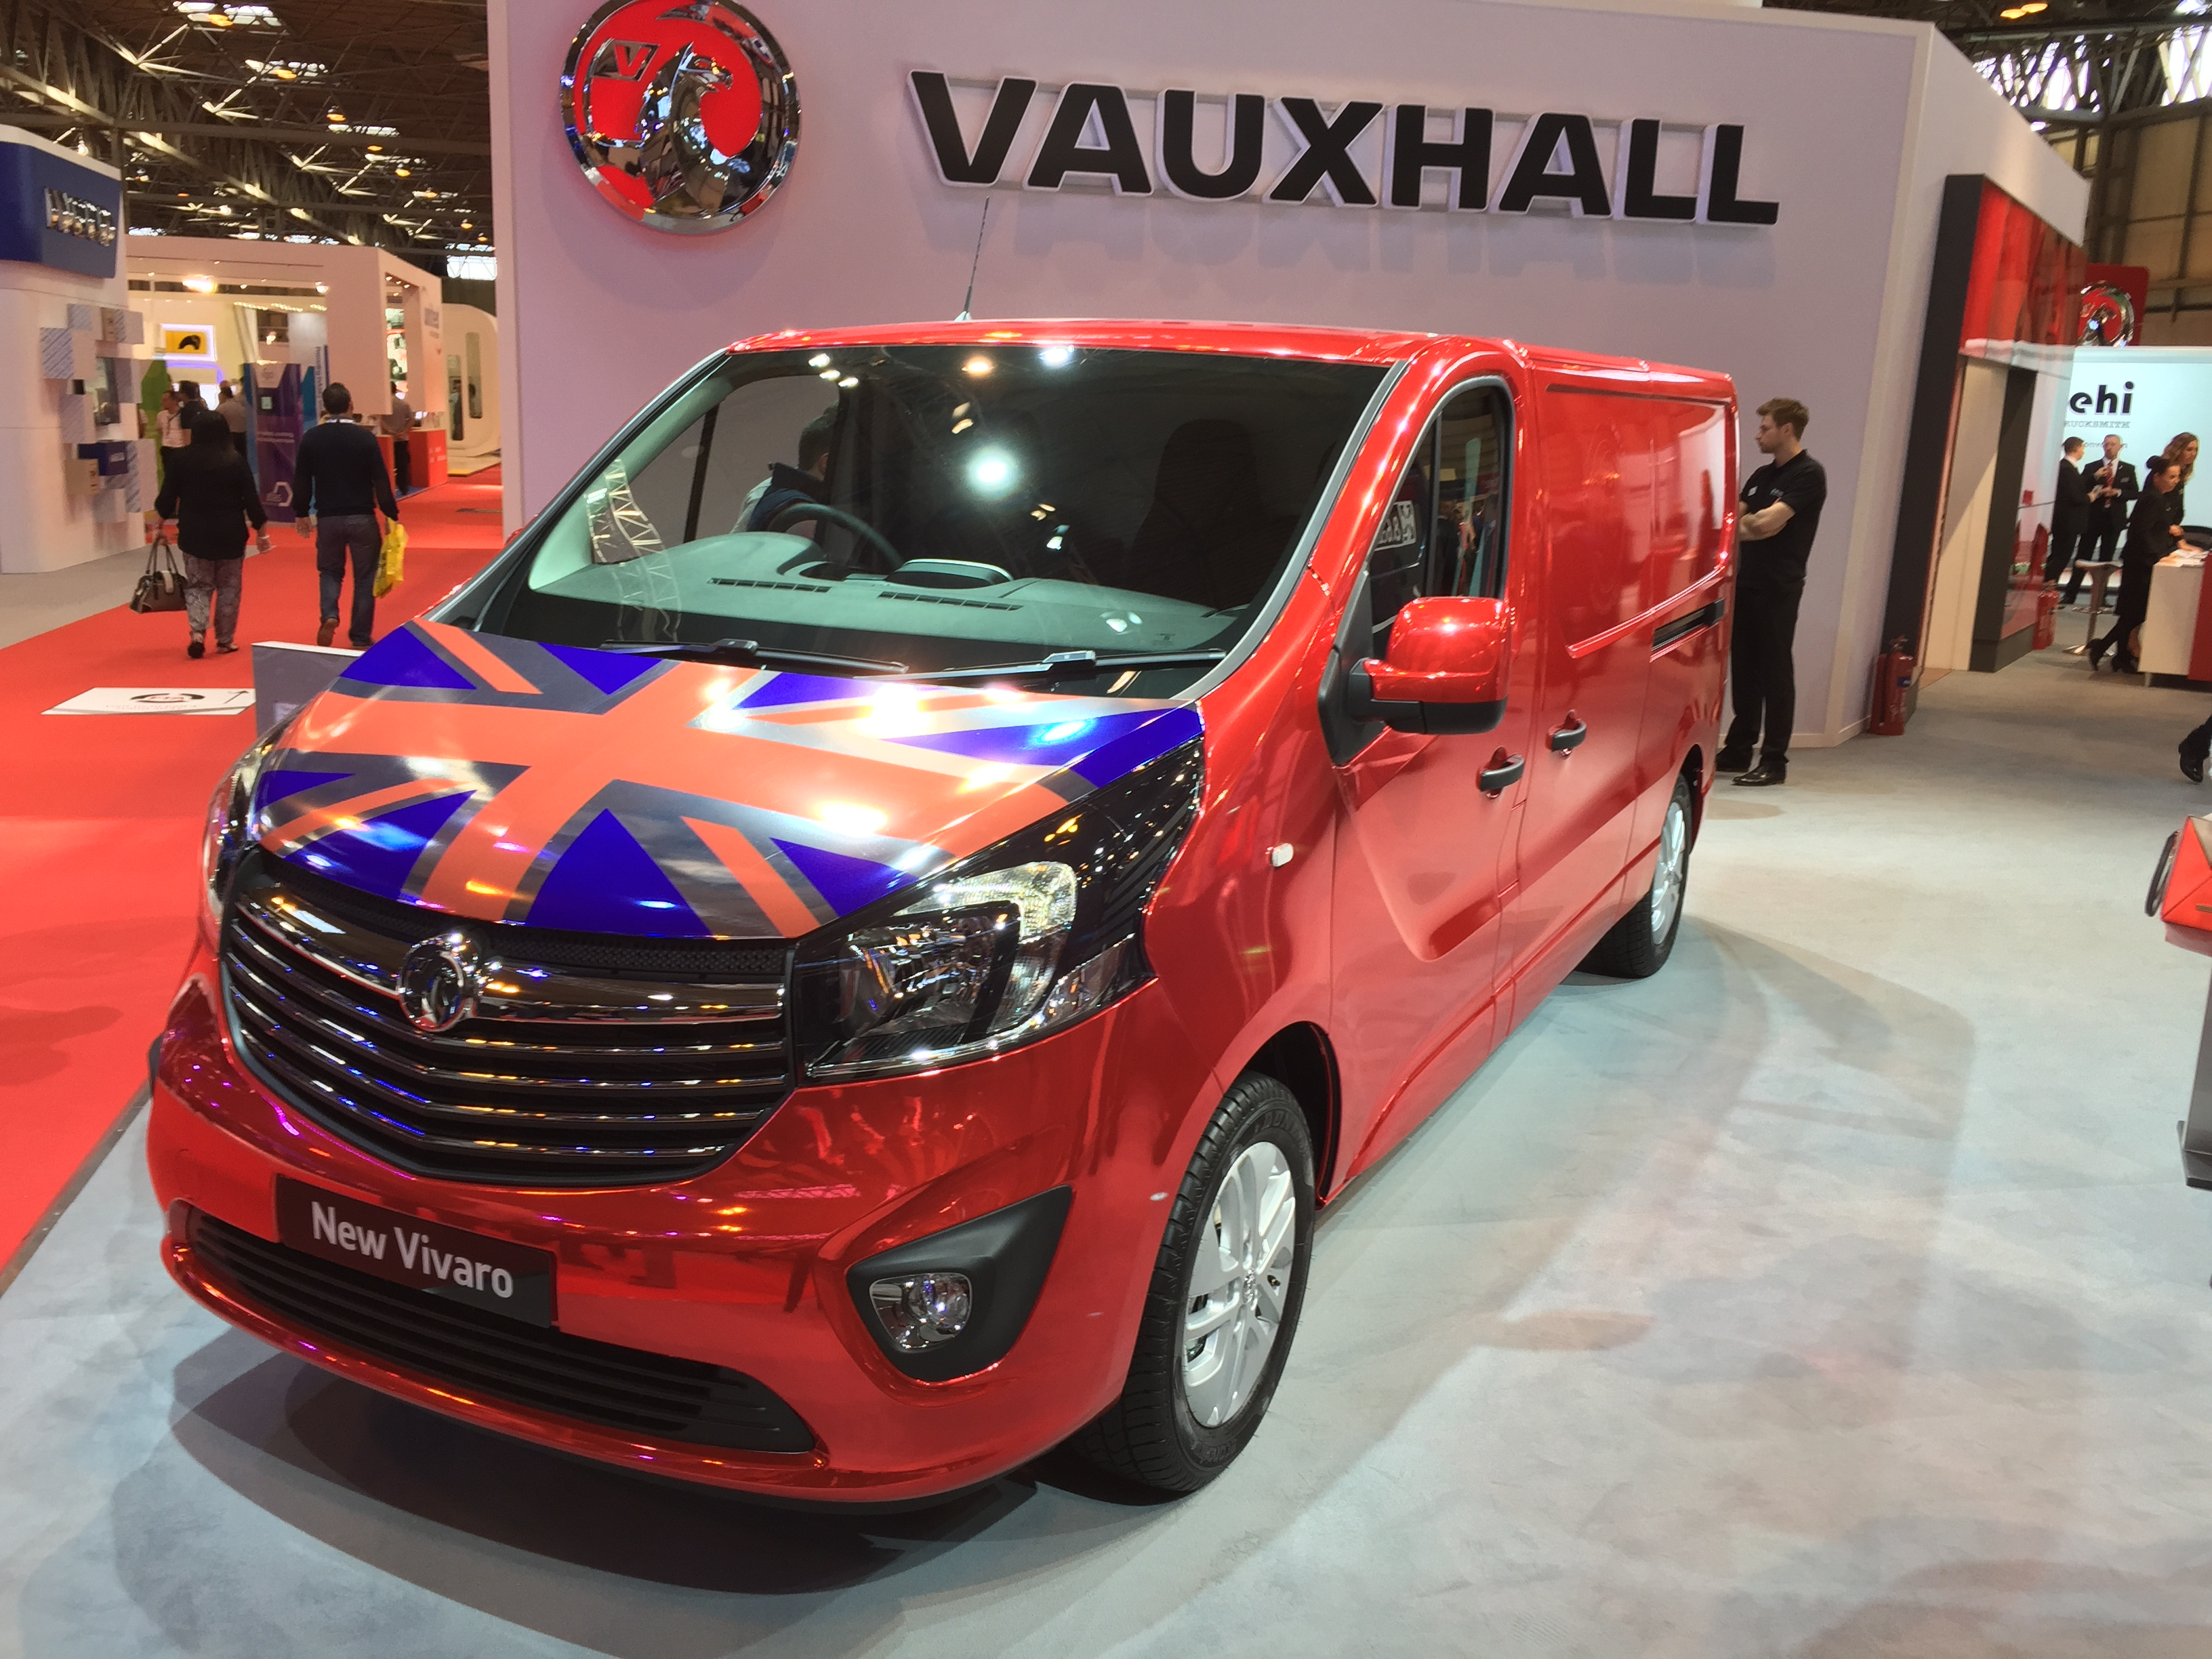 cv show archives business vans vauxhall announces in house signwriting service 14th 2015 cv show 2015